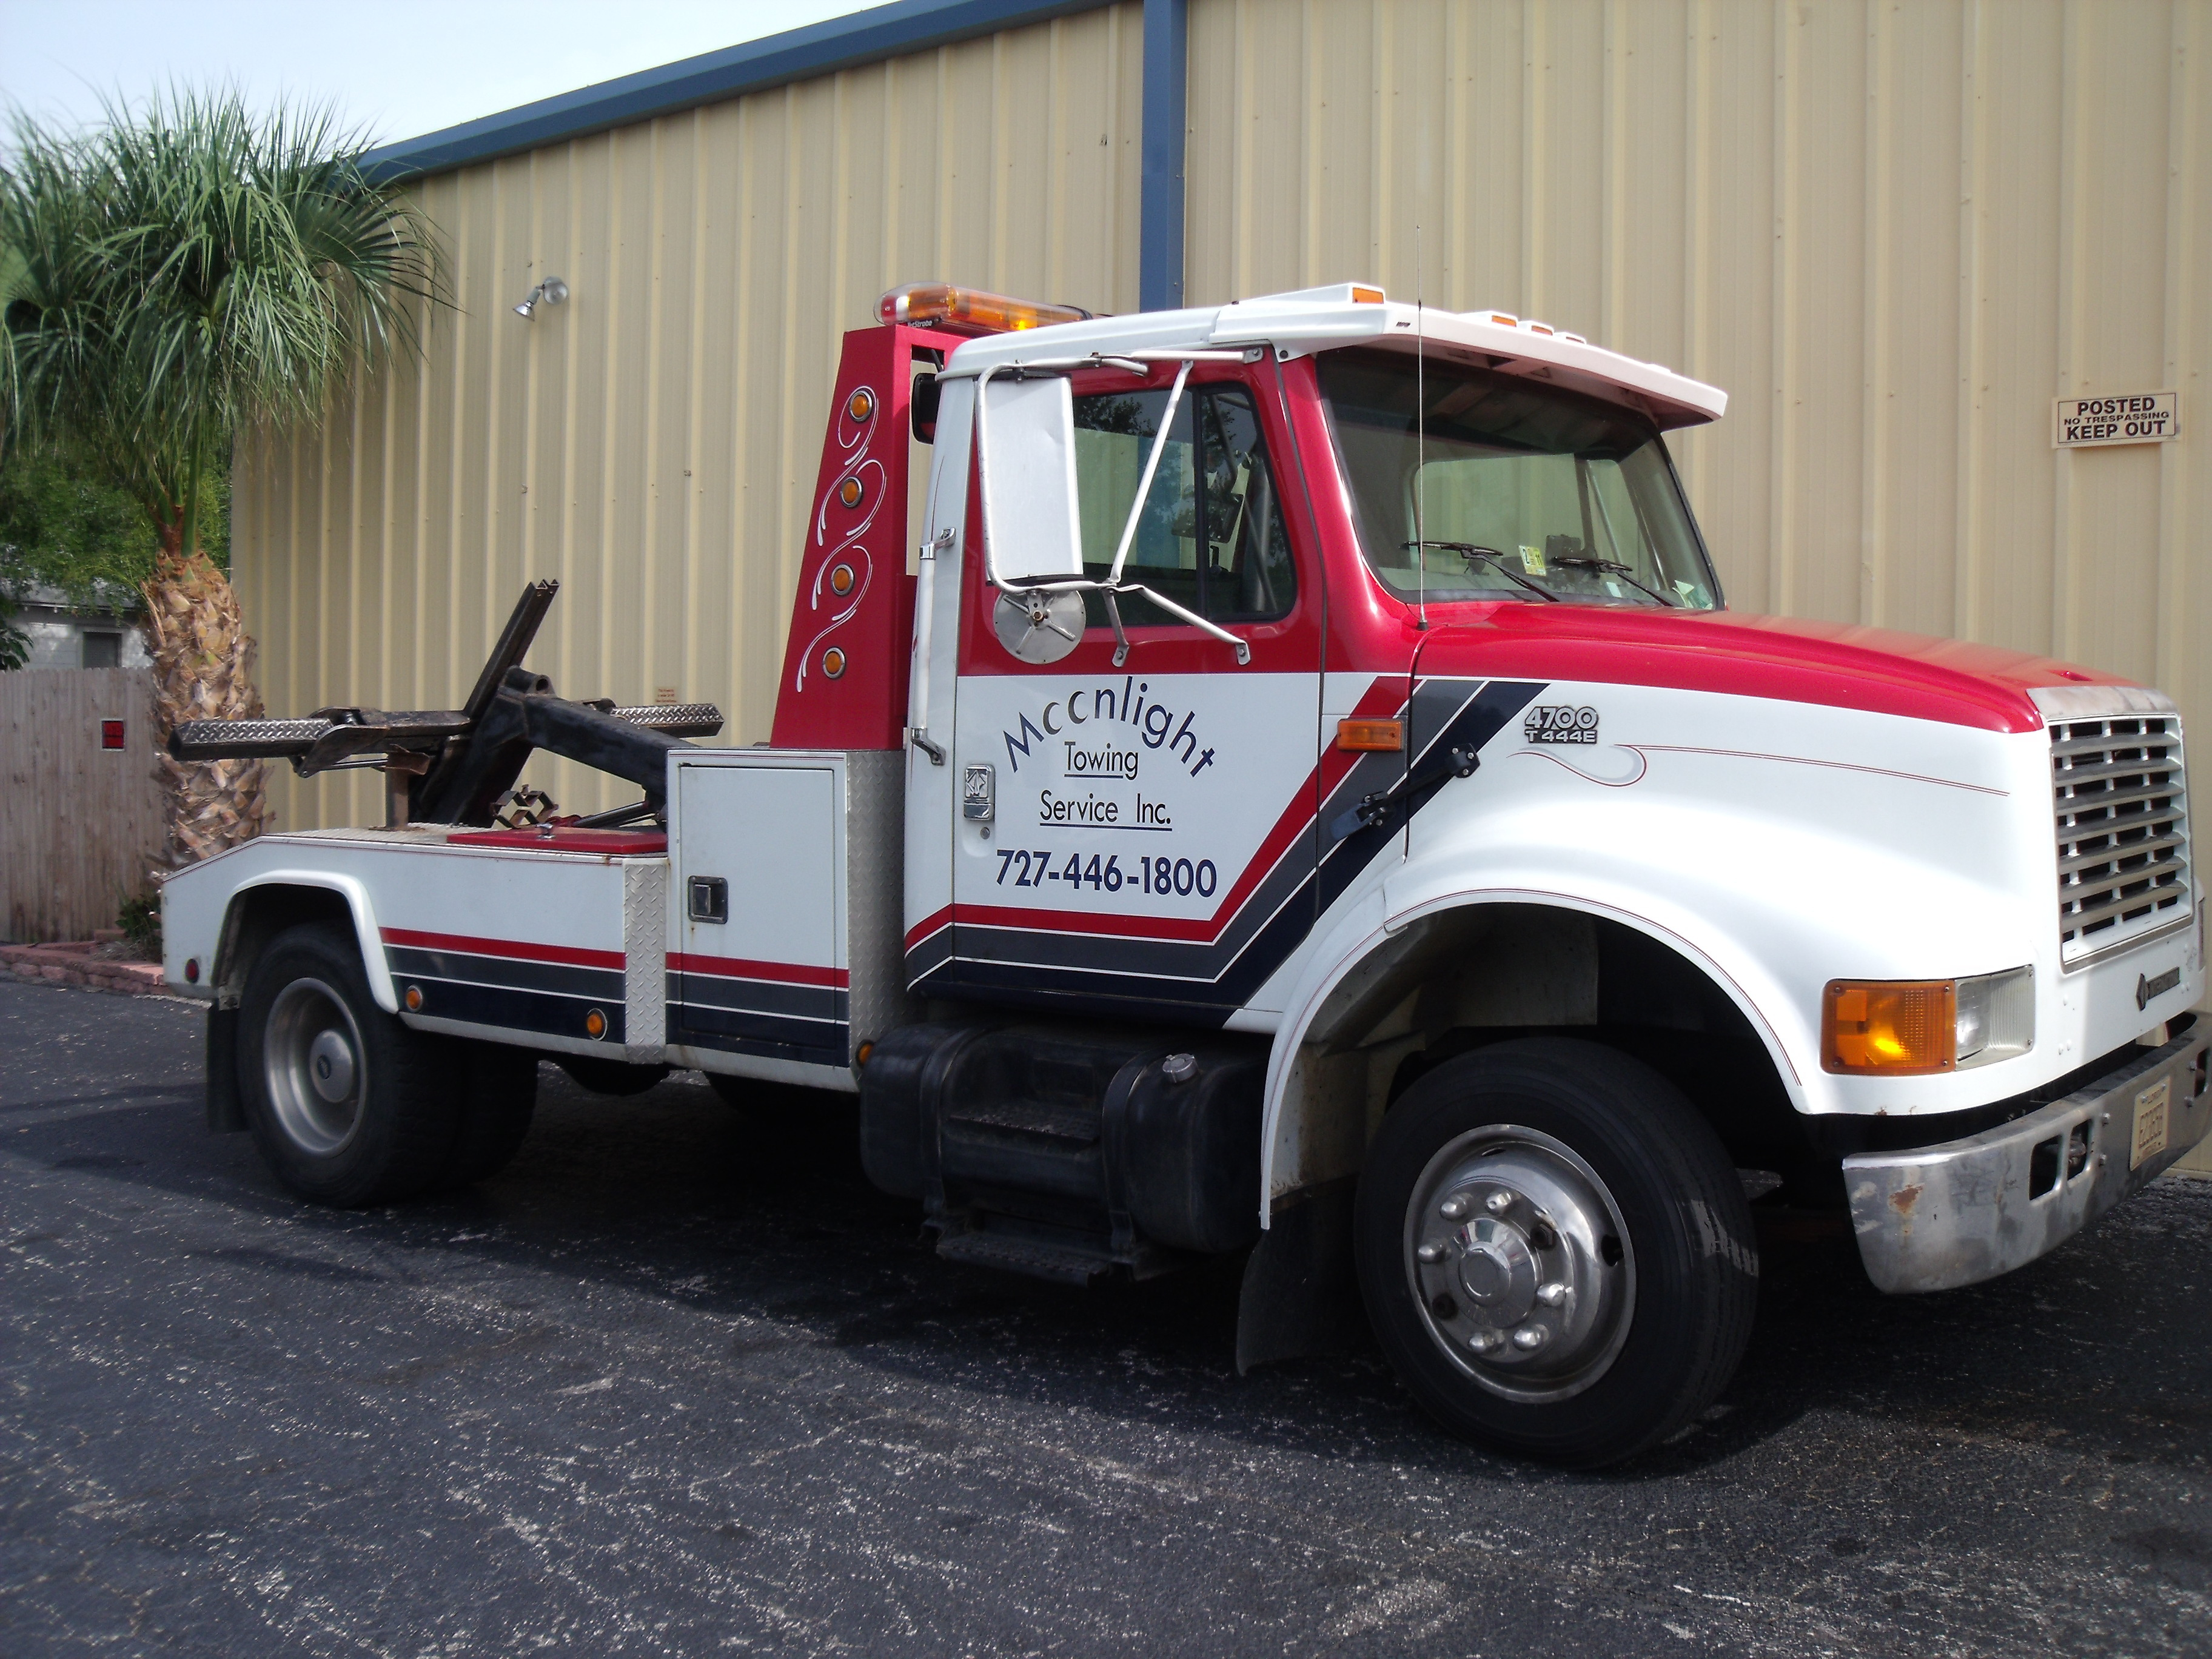 Moonlight Towing Service